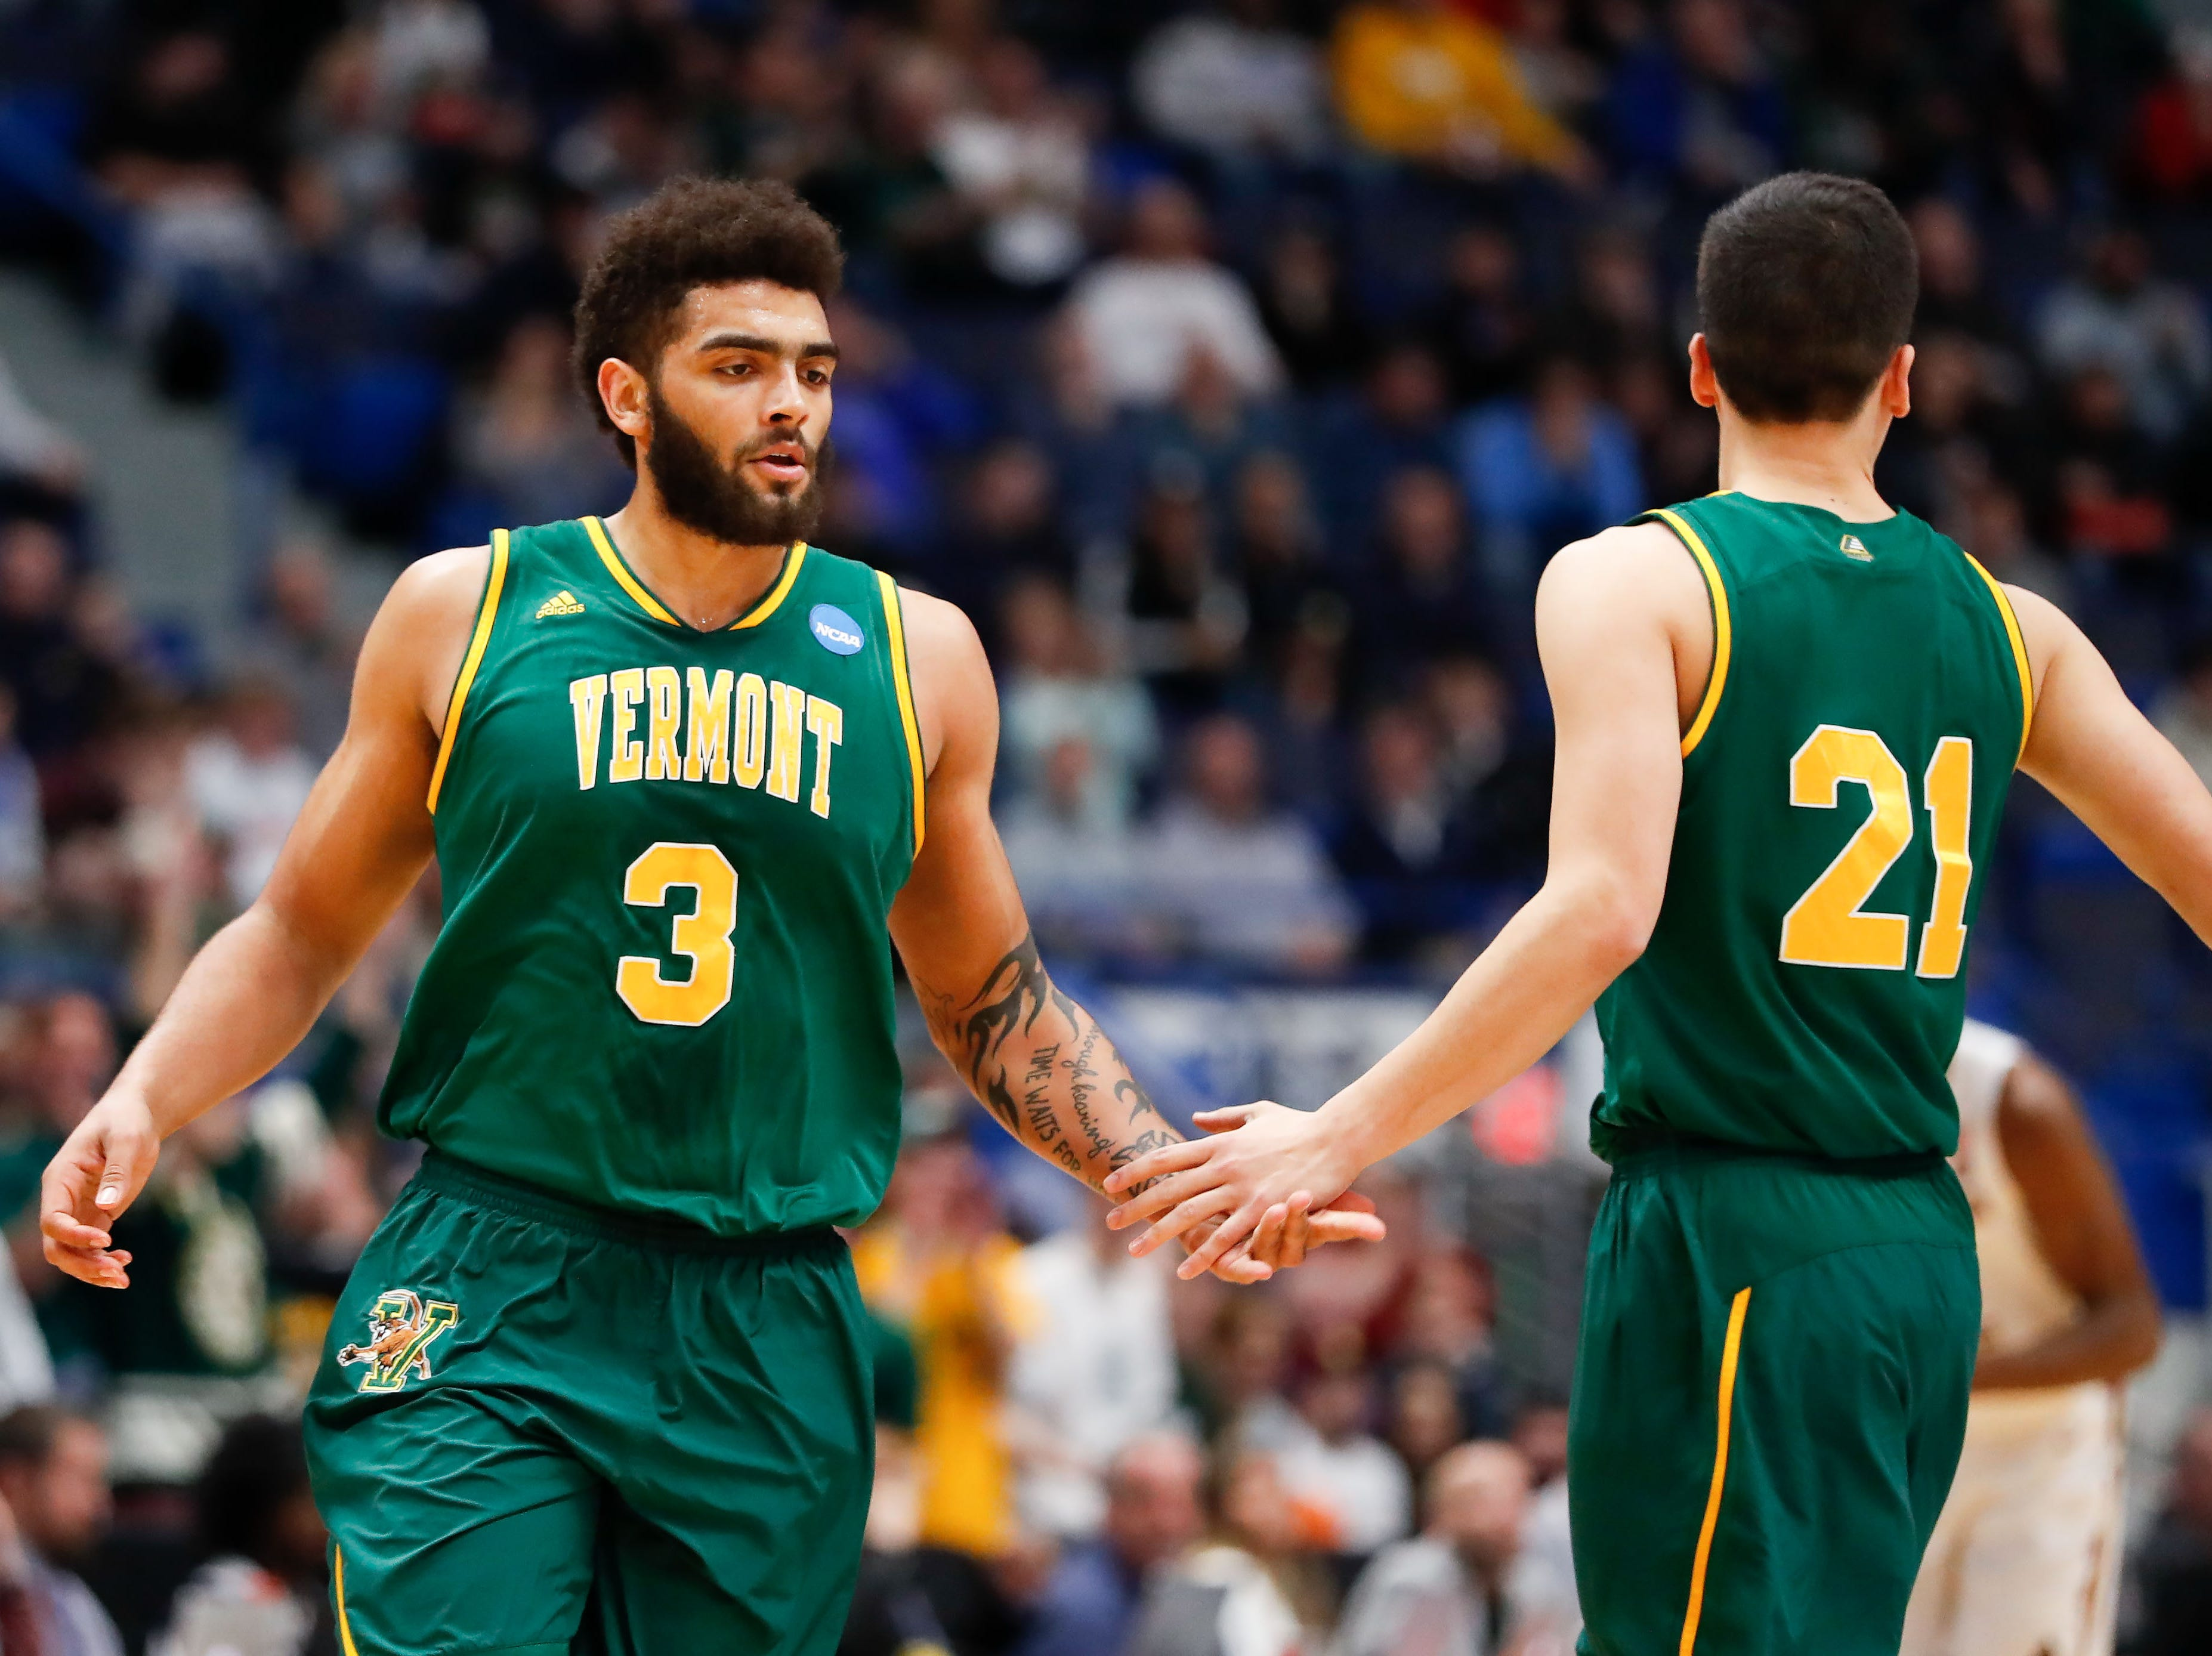 Mar 21, 2019; Hartford, CT, USA; Vermont Catamounts forward Anthony Lamb (3) and guard Everett Duncan (21) high give after a score against the Florida State Seminoles during the first half of a game in the first round of the 2019 NCAA Tournament at XL Center. Mandatory Credit: David Butler II-USA TODAY Sports